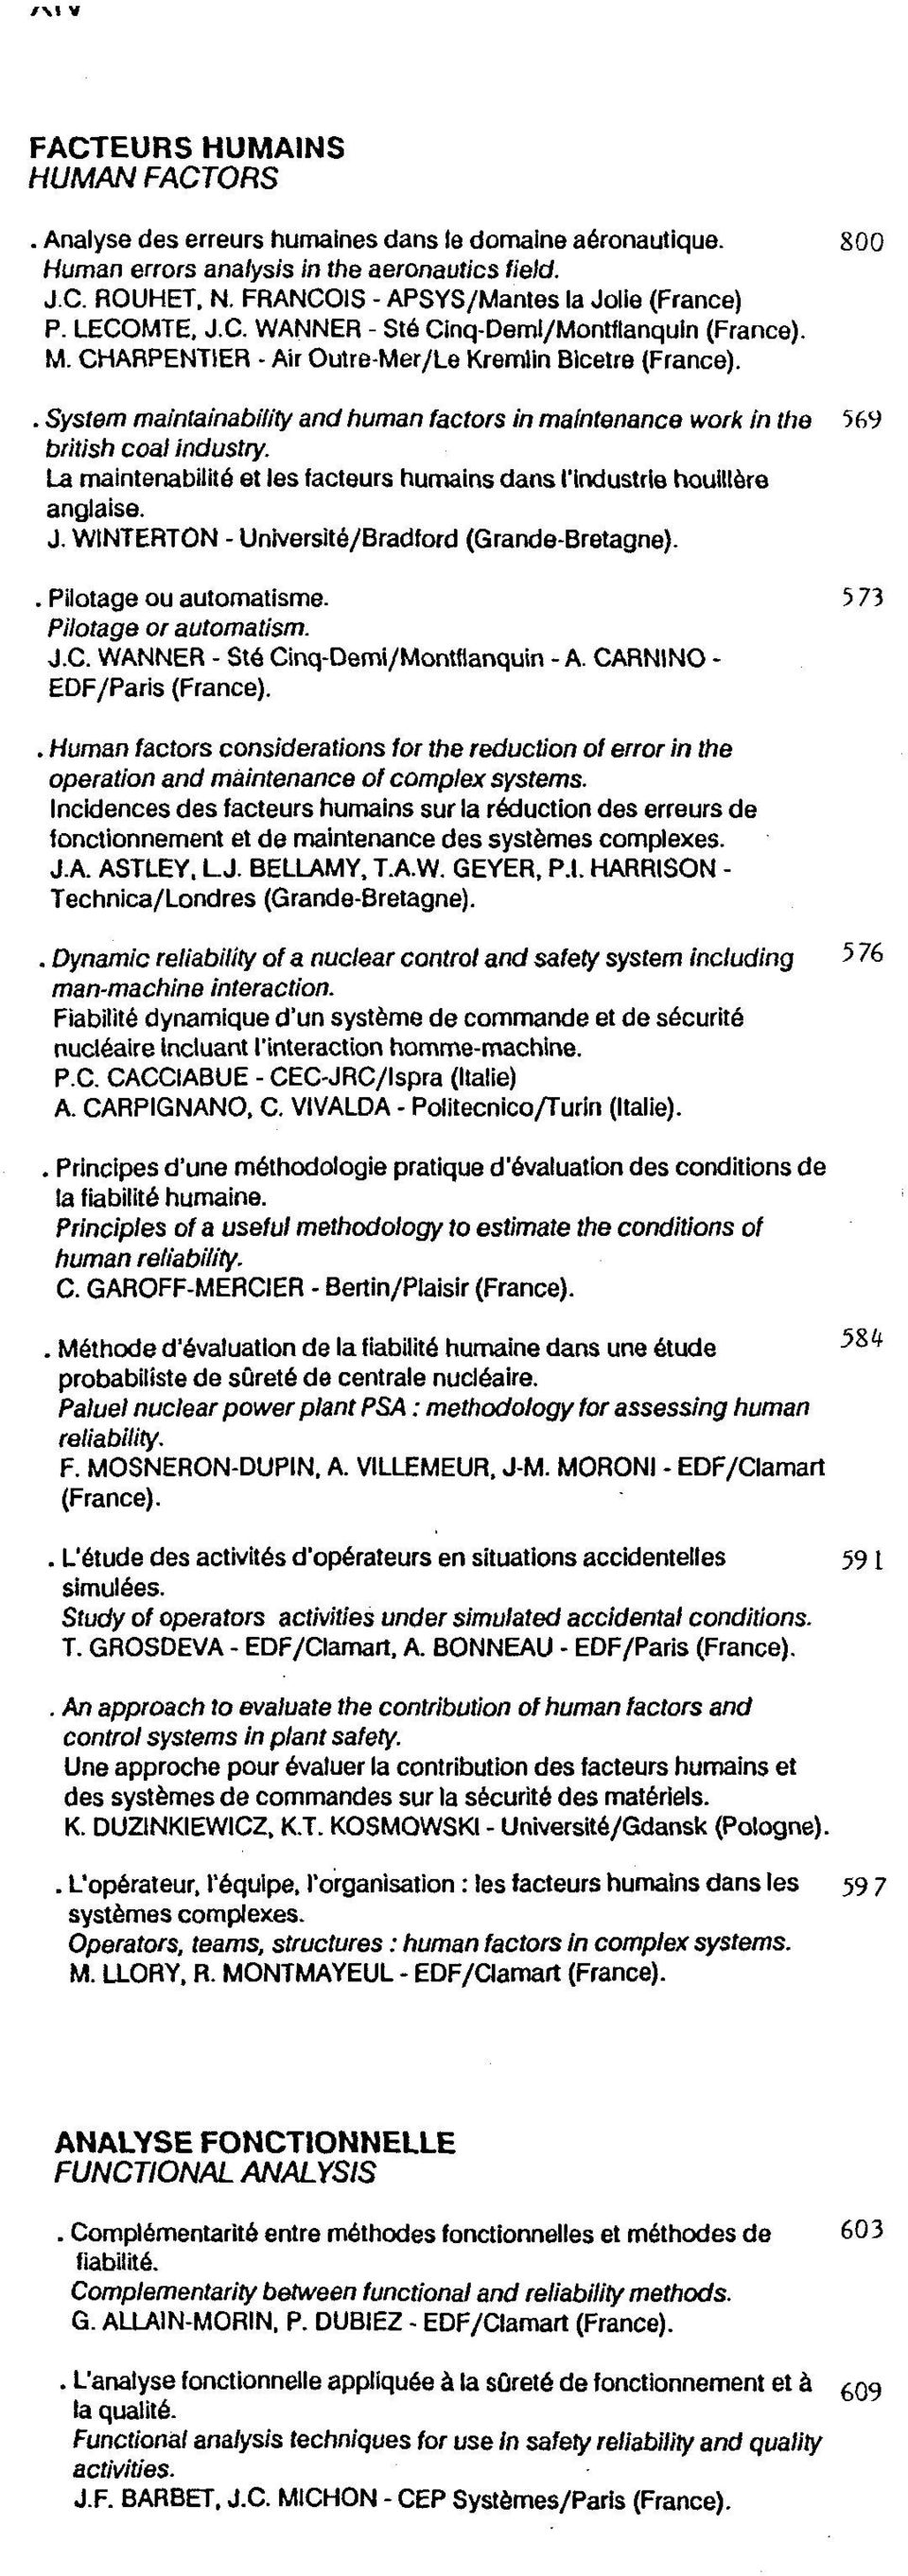 . System maintainability and human factors in maintenance work in the 569 british coal industry. La maintenabilite et les facteurs humains dans I'industrie houillere anglaise. J.